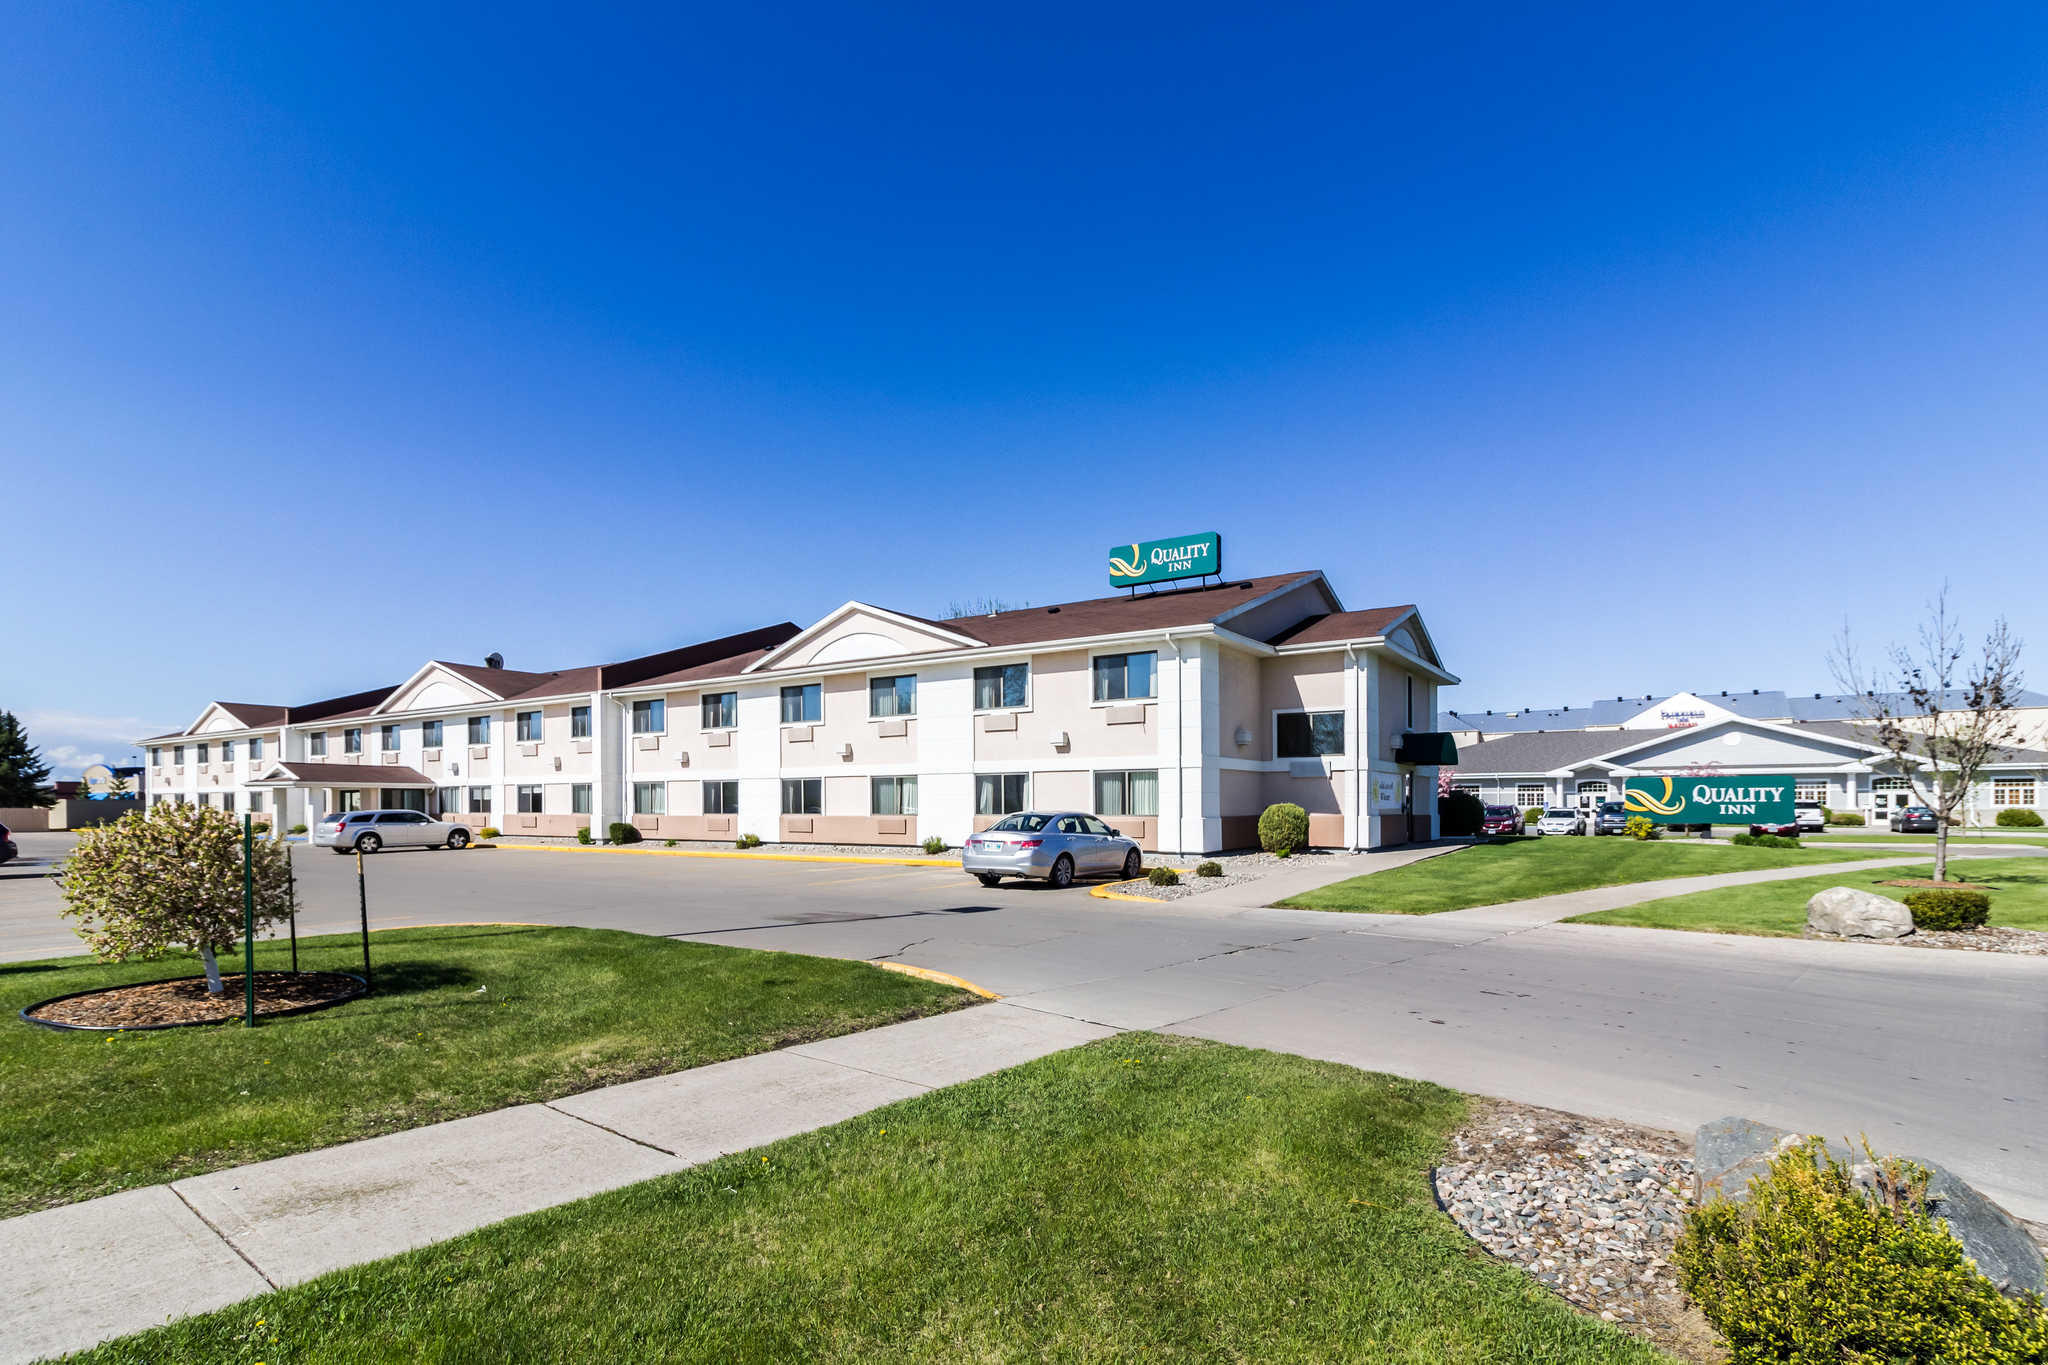 East Grand Forks Hotels And Motels